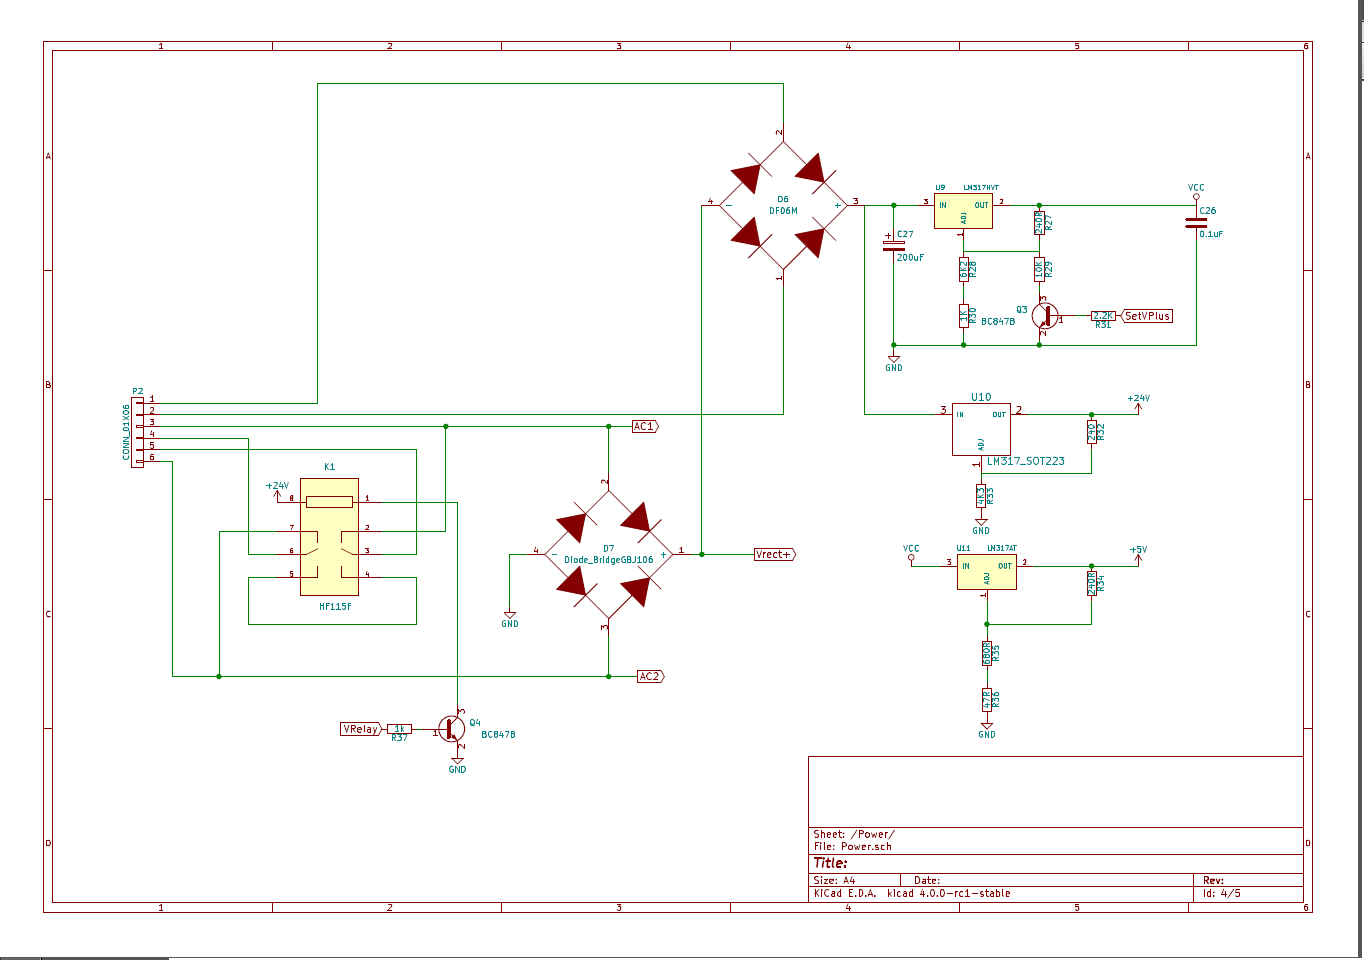 12 Volt To 24 Diagram also In Circuit Diagram also 24v Power Supply Schematic as well 12 Volt Battery Charger Schematic besides  on smps with two outputs 12v 3amax 24v 2amax